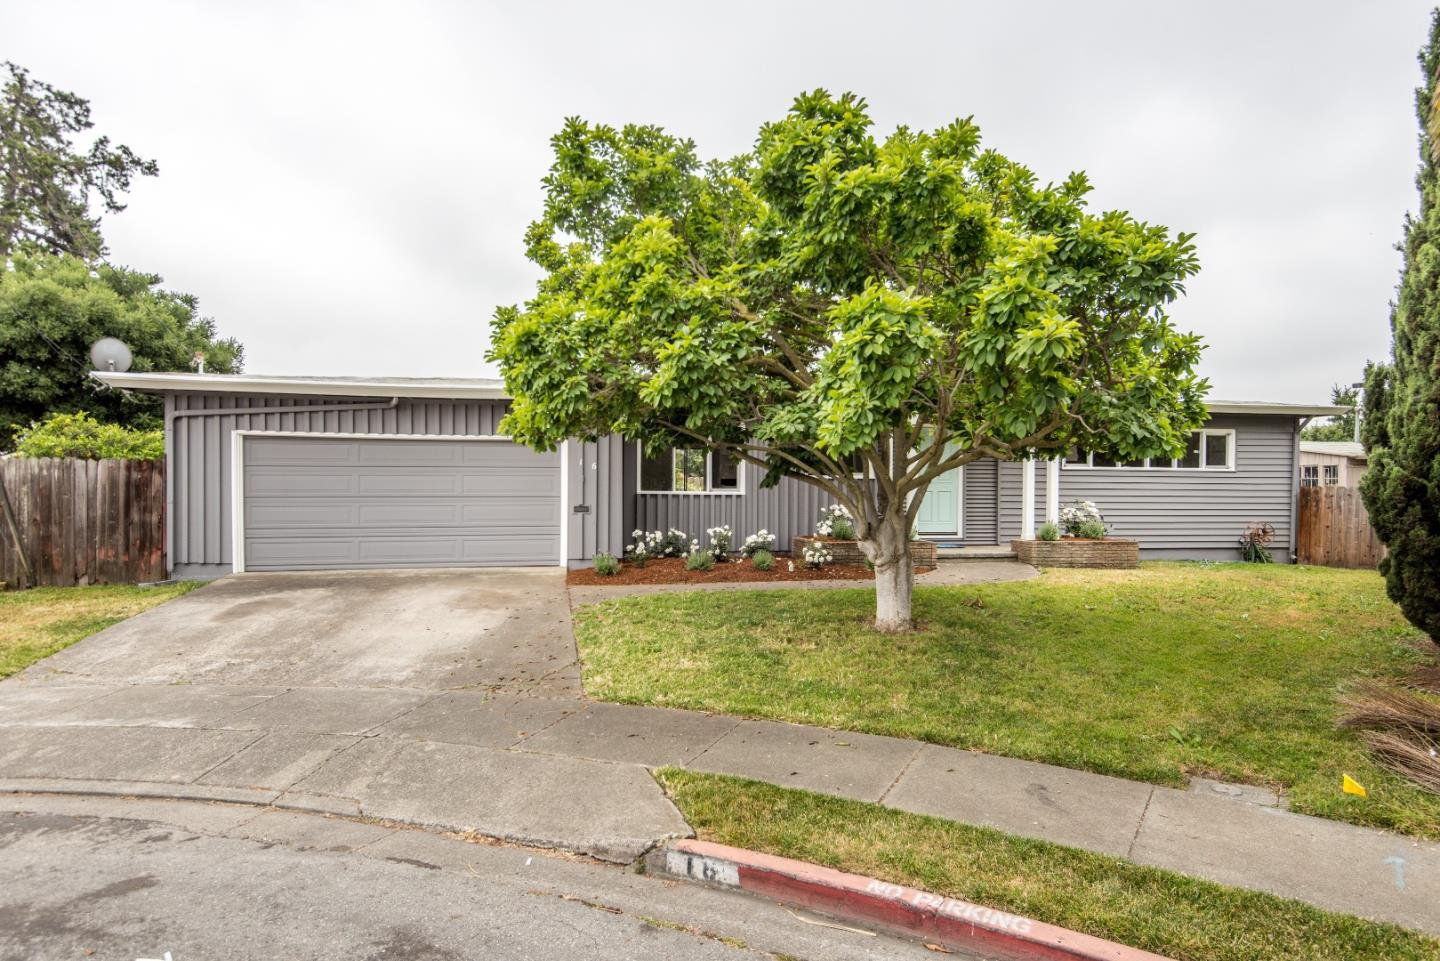 middle eastern singles in palo alto For sale: 3 bed, 2 bath ∙ 1670 sq ft ∙ 789 green st, east palo alto, ca 94303 ∙ $689,000 ∙ mls# ml81695813 ∙ great opportunity for buyers to renovate to their own taste.